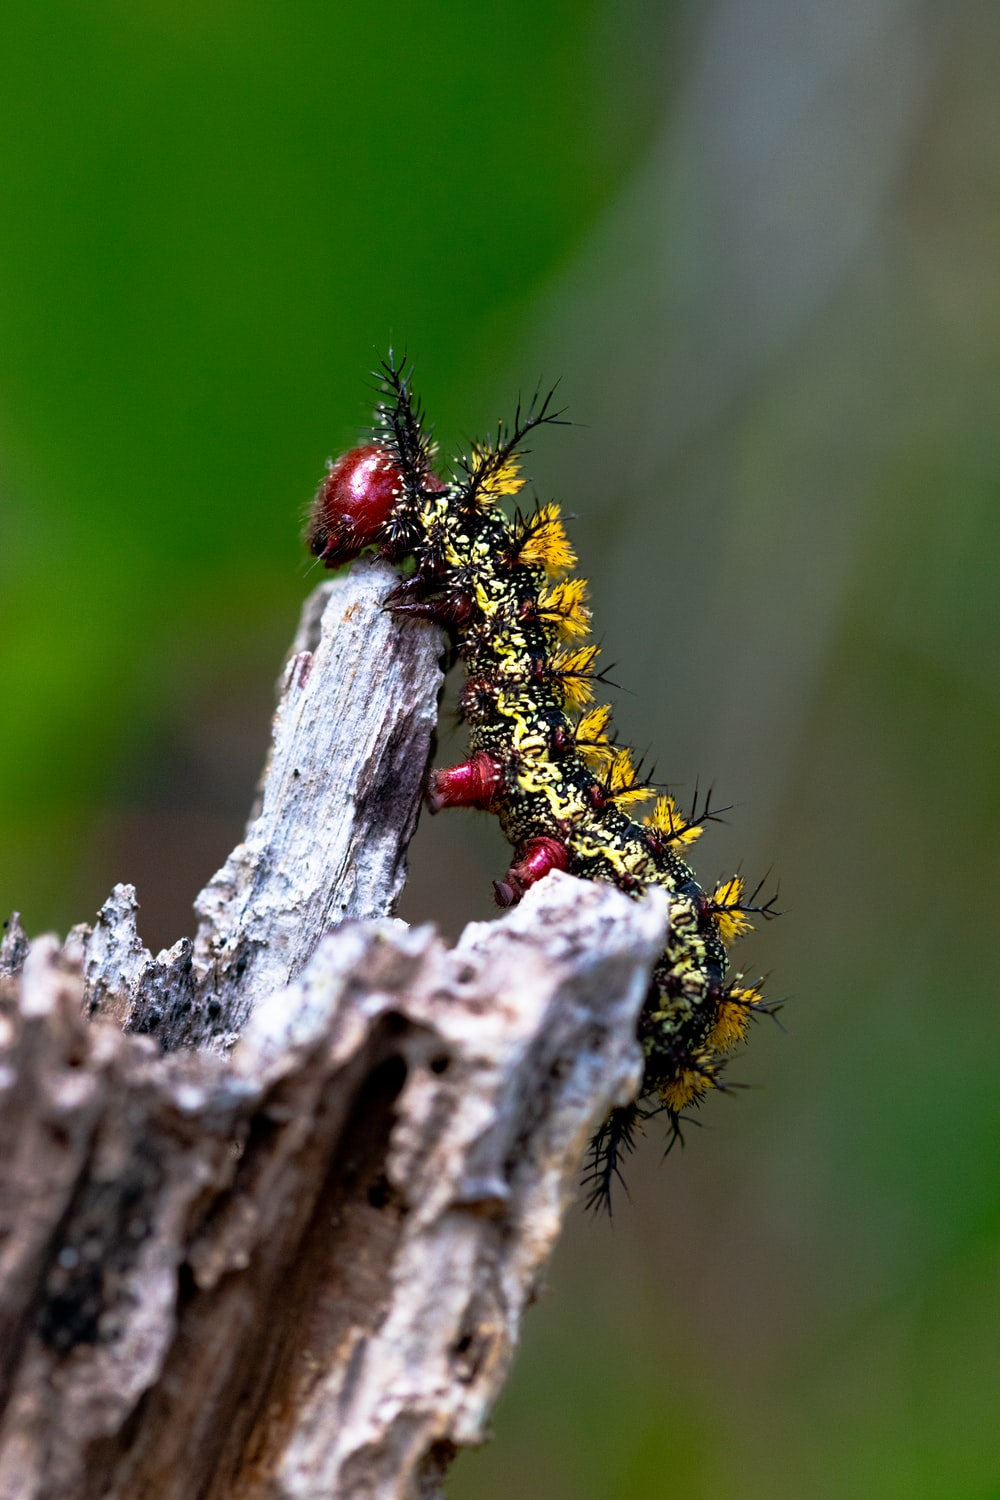 brown and black caterpillar on gray wood